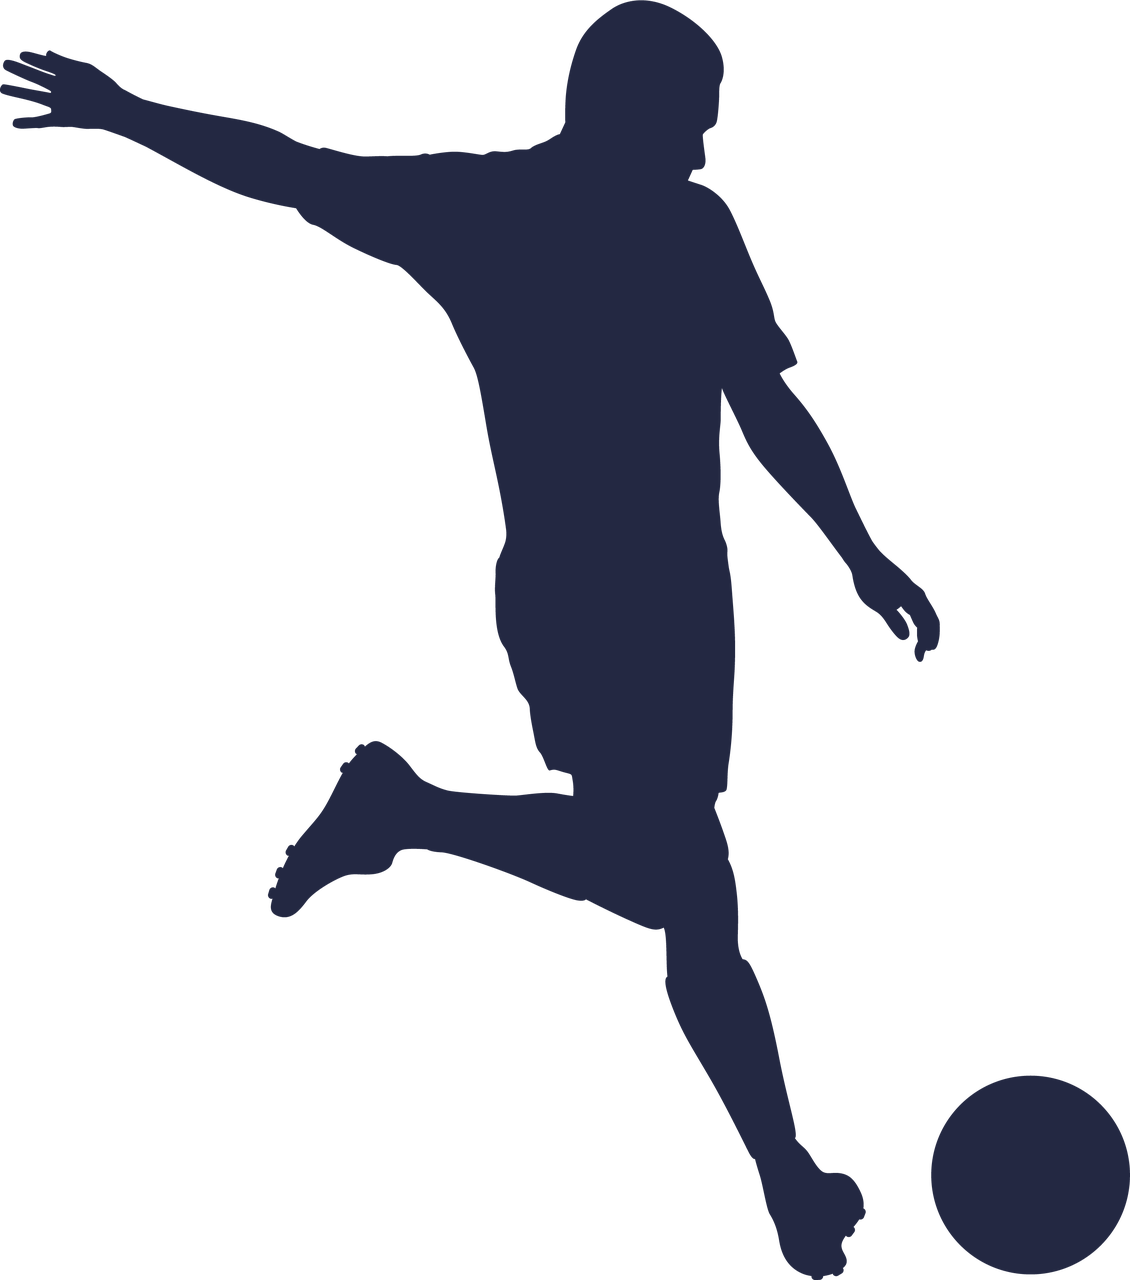 View Full Size Girls Soccer Silhouette Soccer Silhouette Clipart And Download Transparent Clipart For Free Like I In 2020 Soccer Silhouette Girls Soccer Silhouette